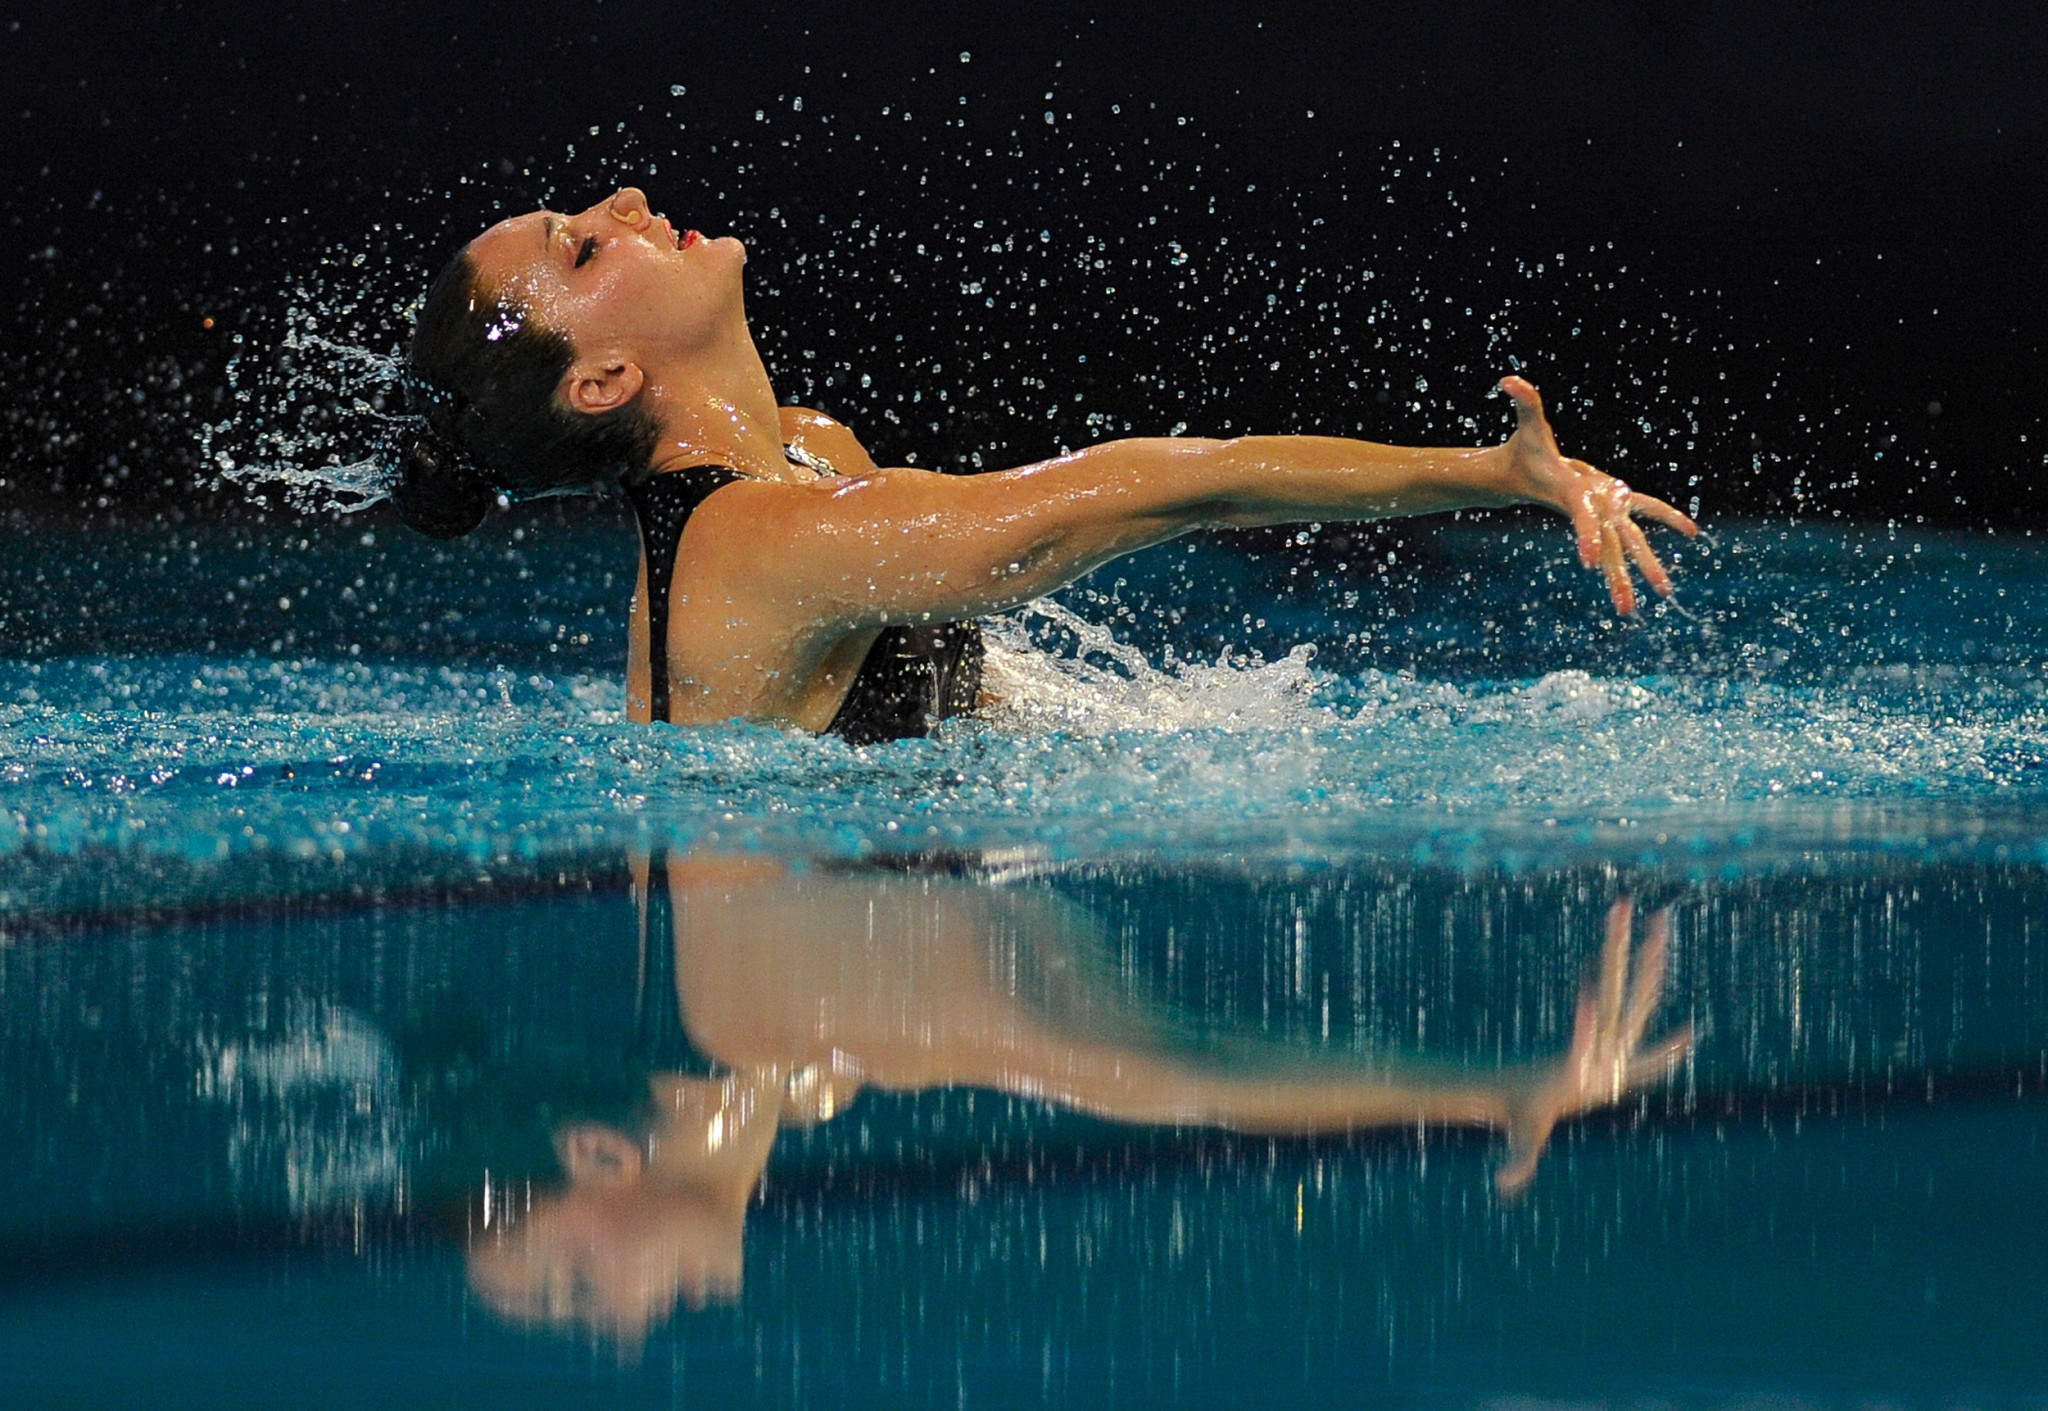 Andrea Fuentes helped design the routines for the FINA Artistic Swimming Virtual Challenge ©Getty Images